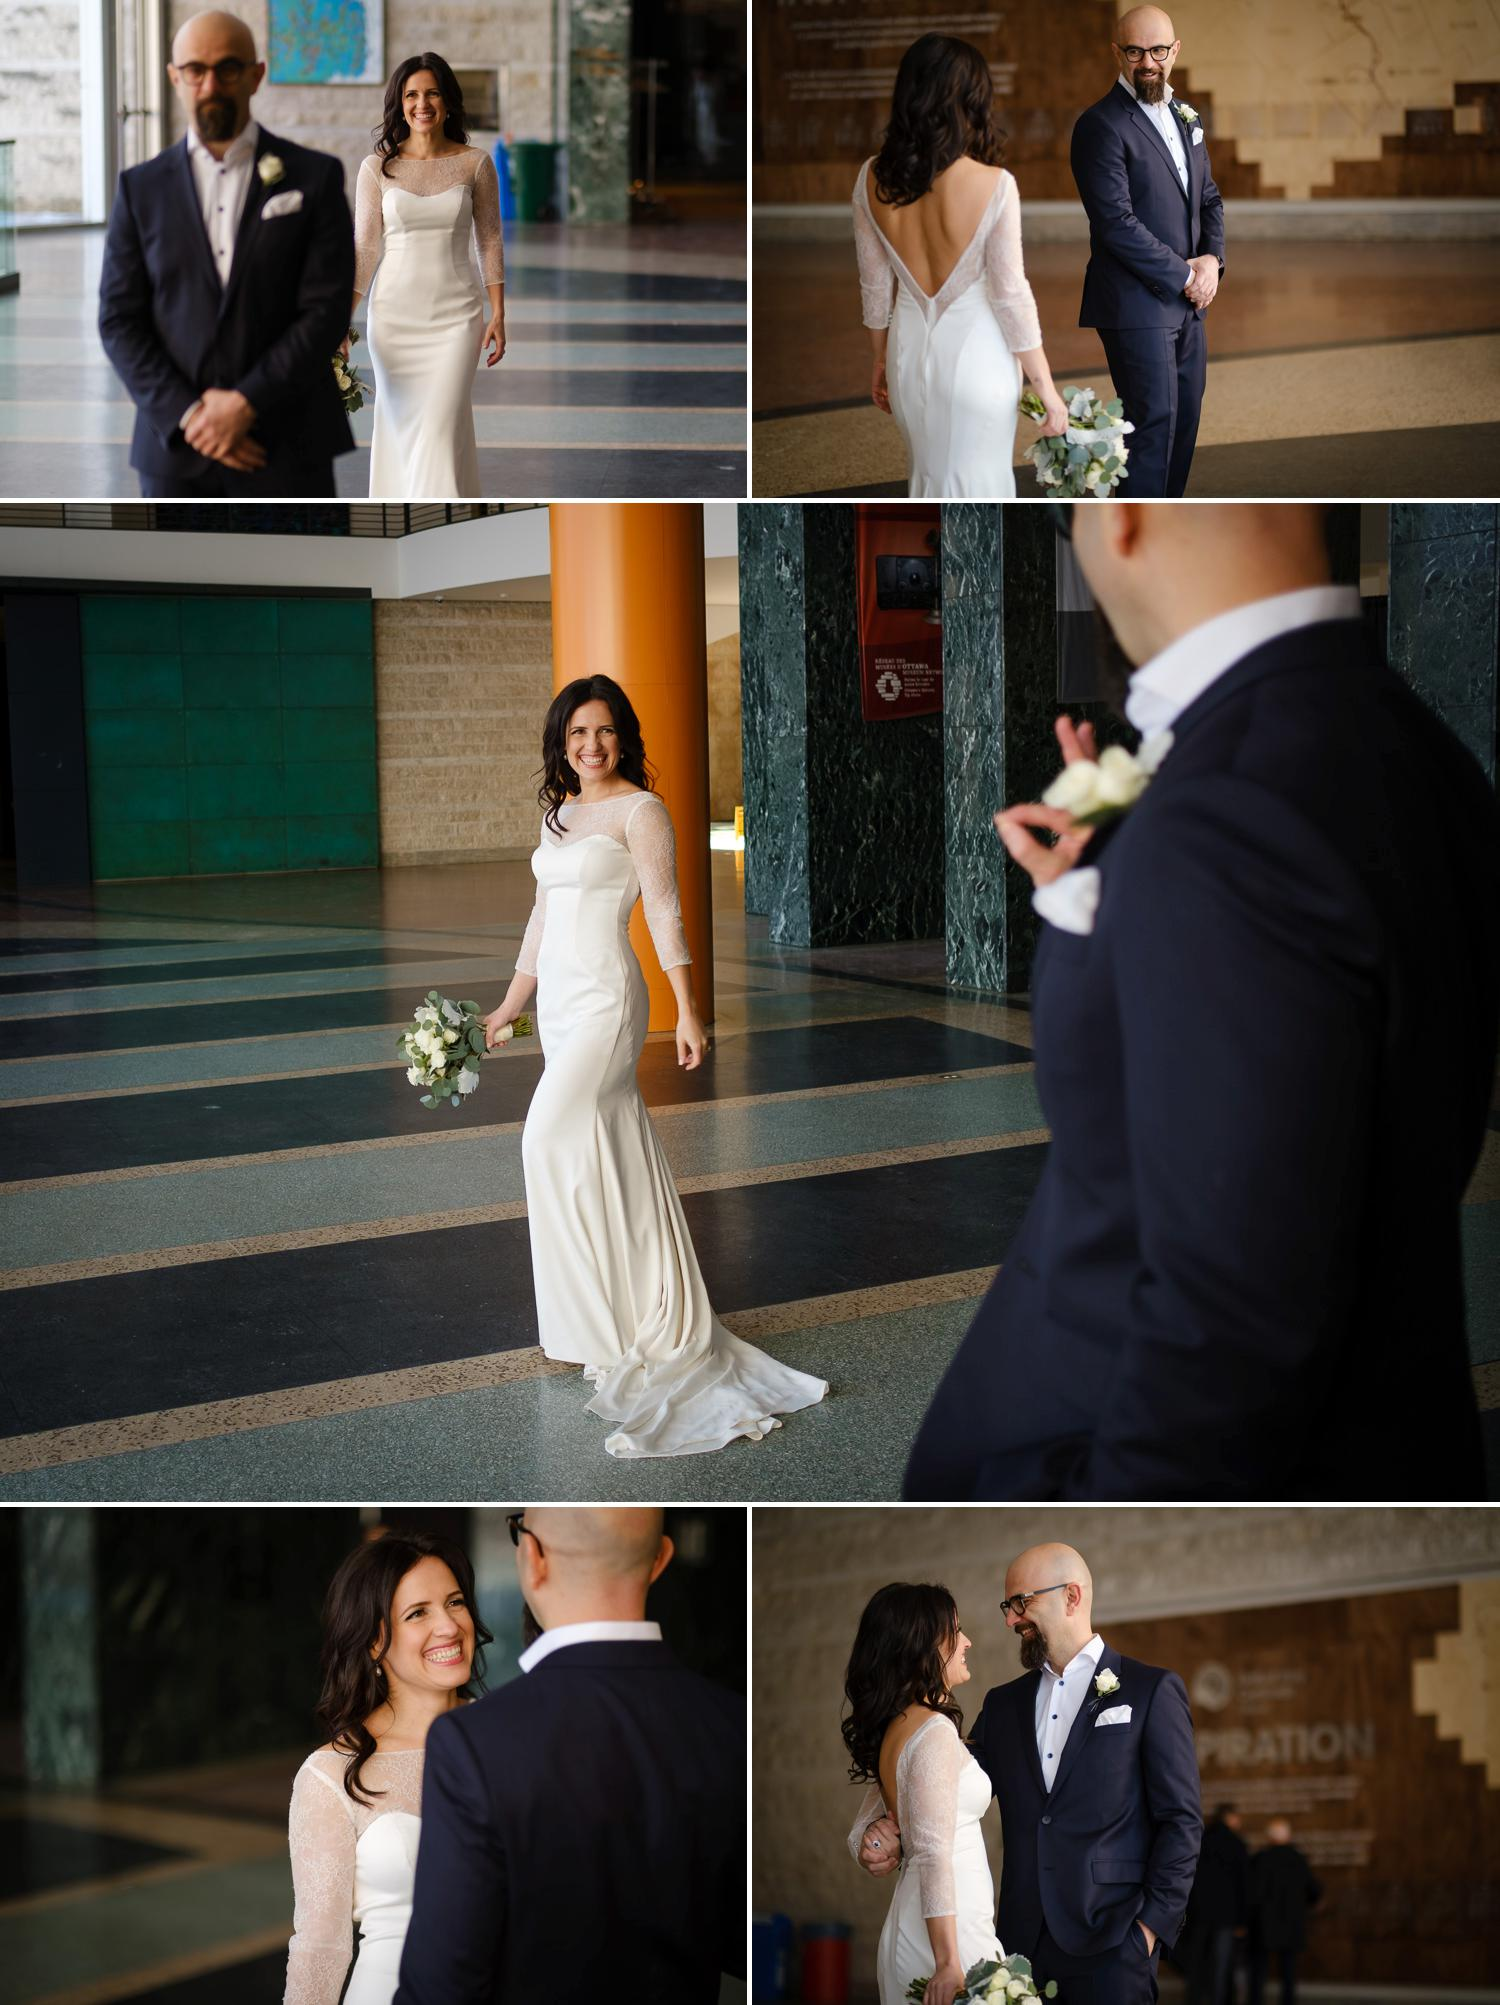 Photographs of when a groom first sees his bride on their wedding day